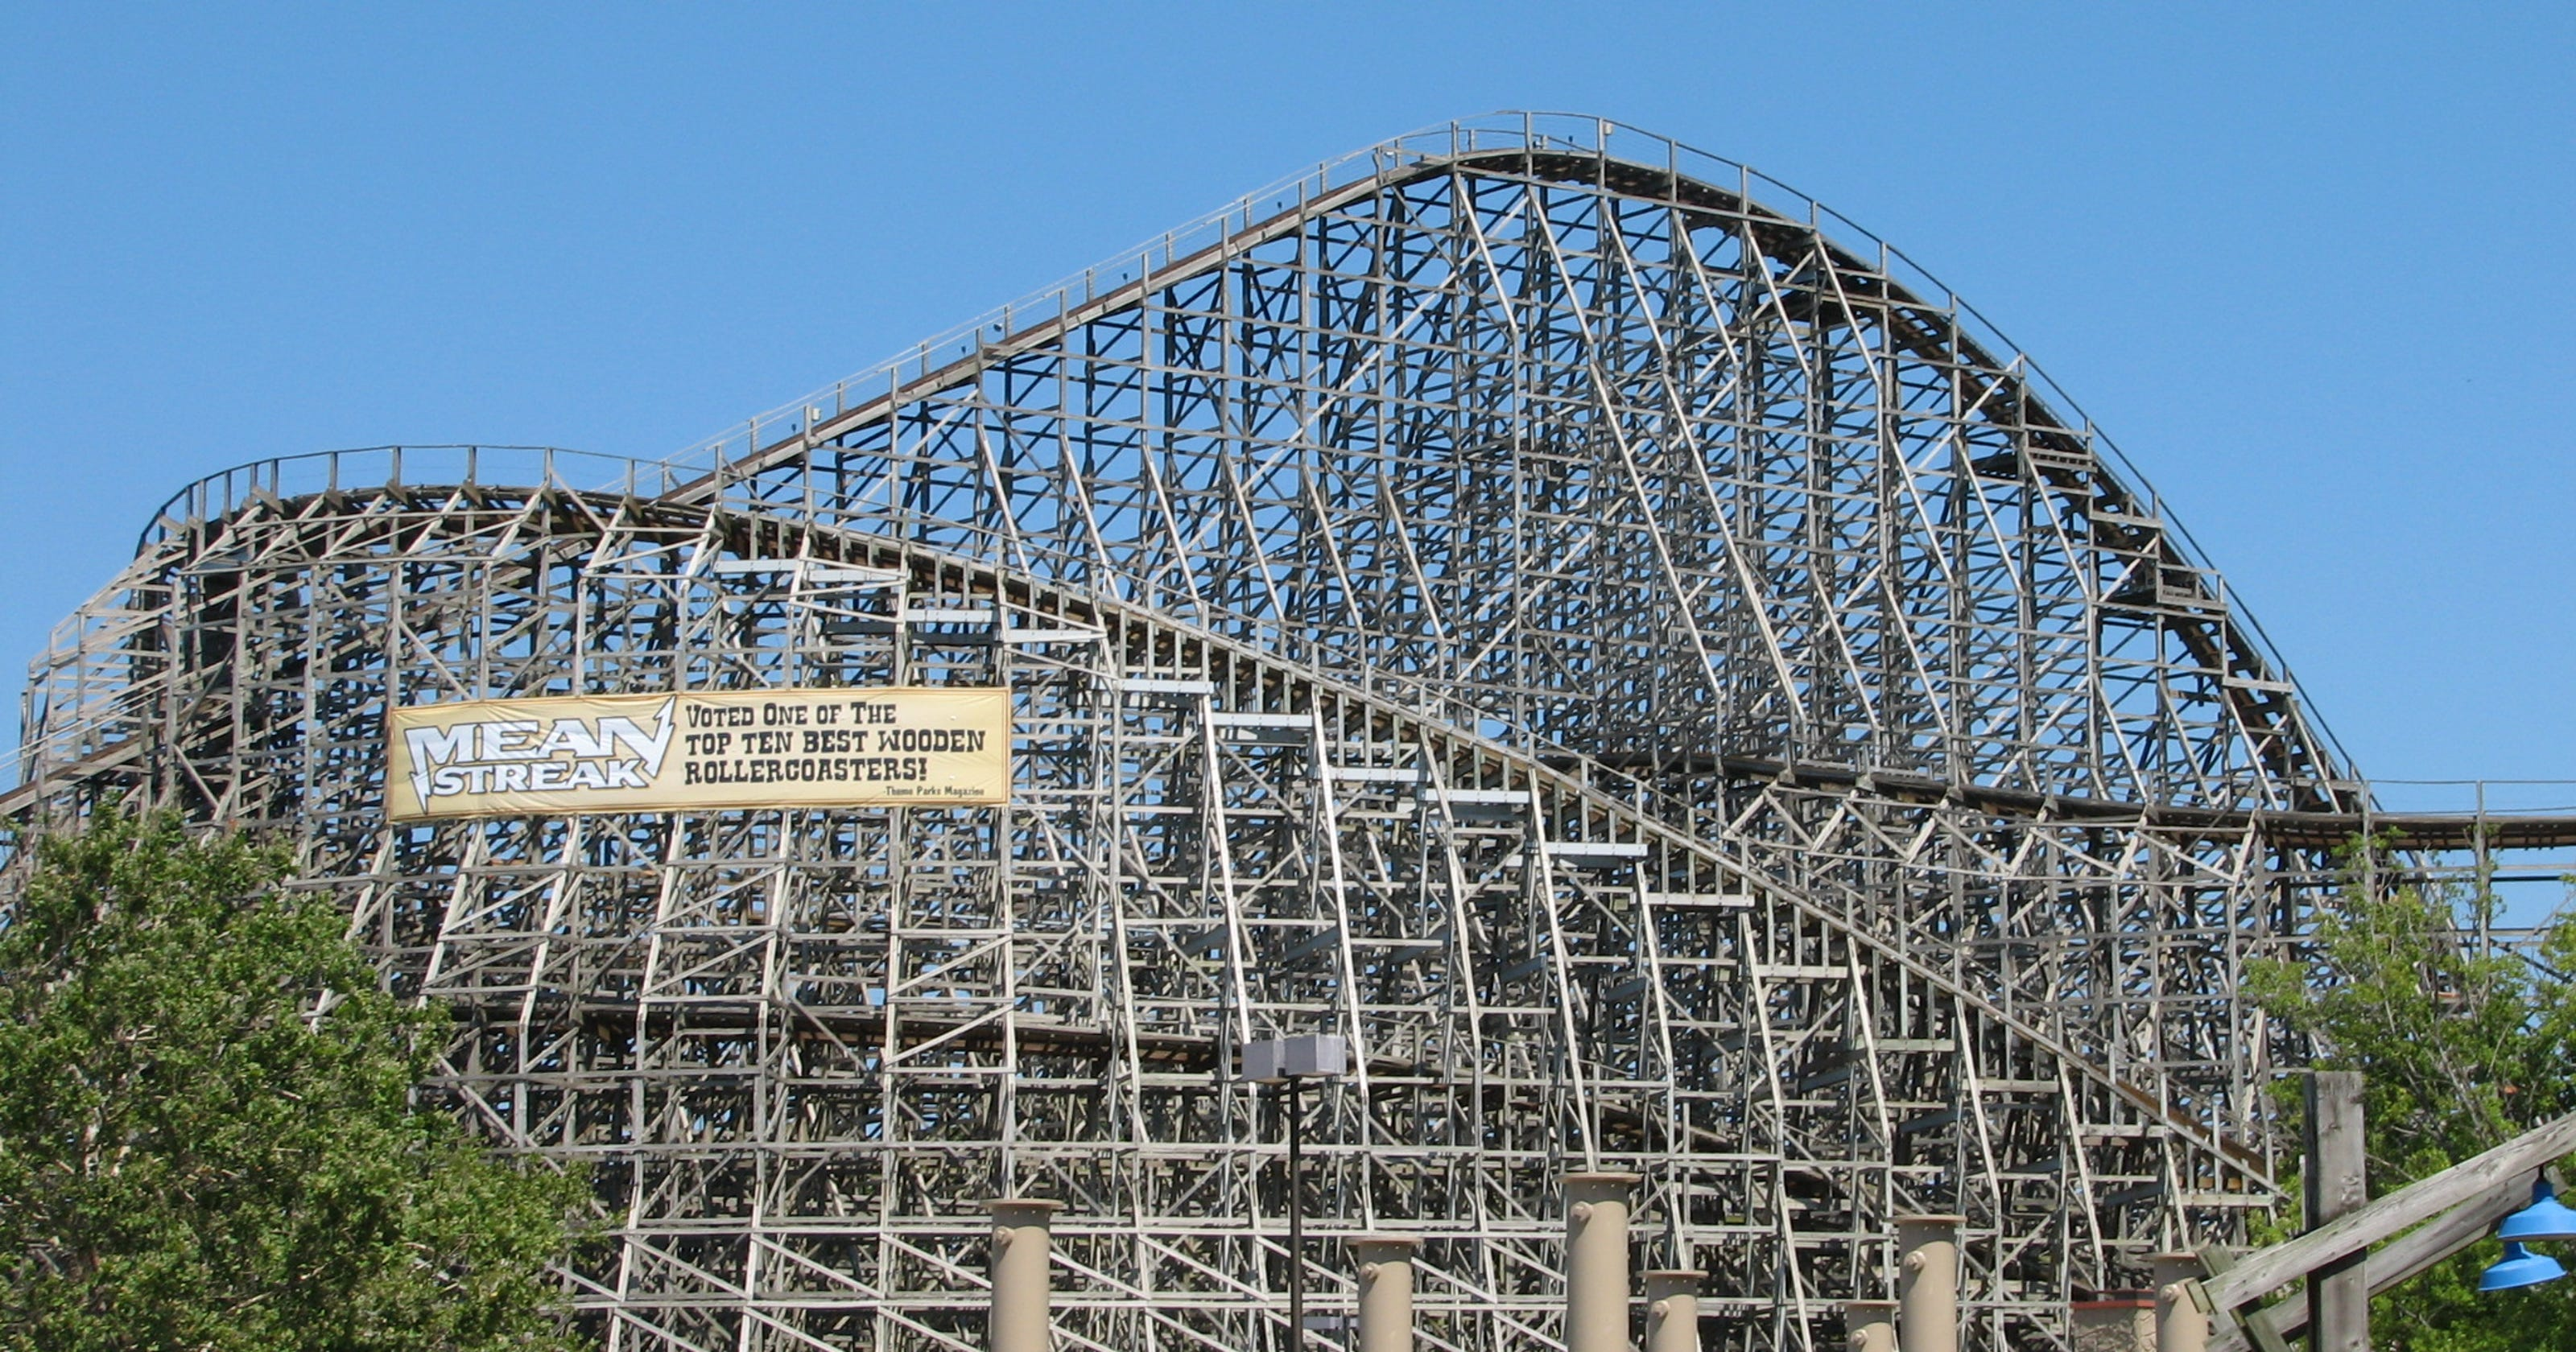 King James Roller Coaster Not Coming To Cedar Point